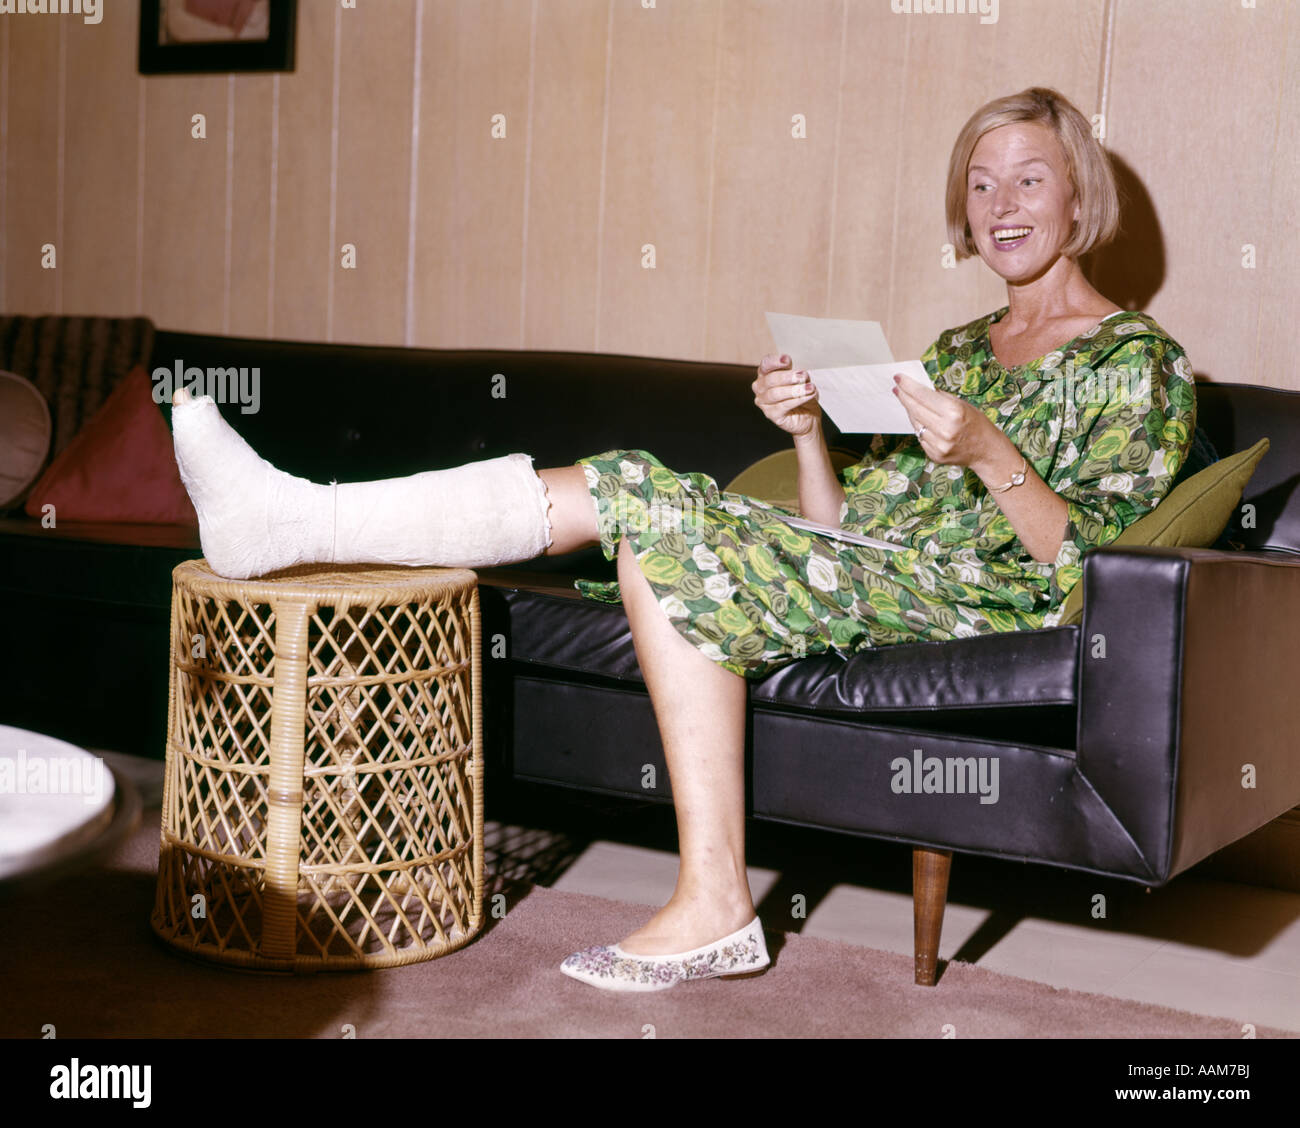 1960s WOMAN WITH BROKEN LEG IN CAST PROPPED ON HAMPER LOOKING AT LETTER HAPPY INSURANCE PAYMENT BASKET SMILING - Stock Image